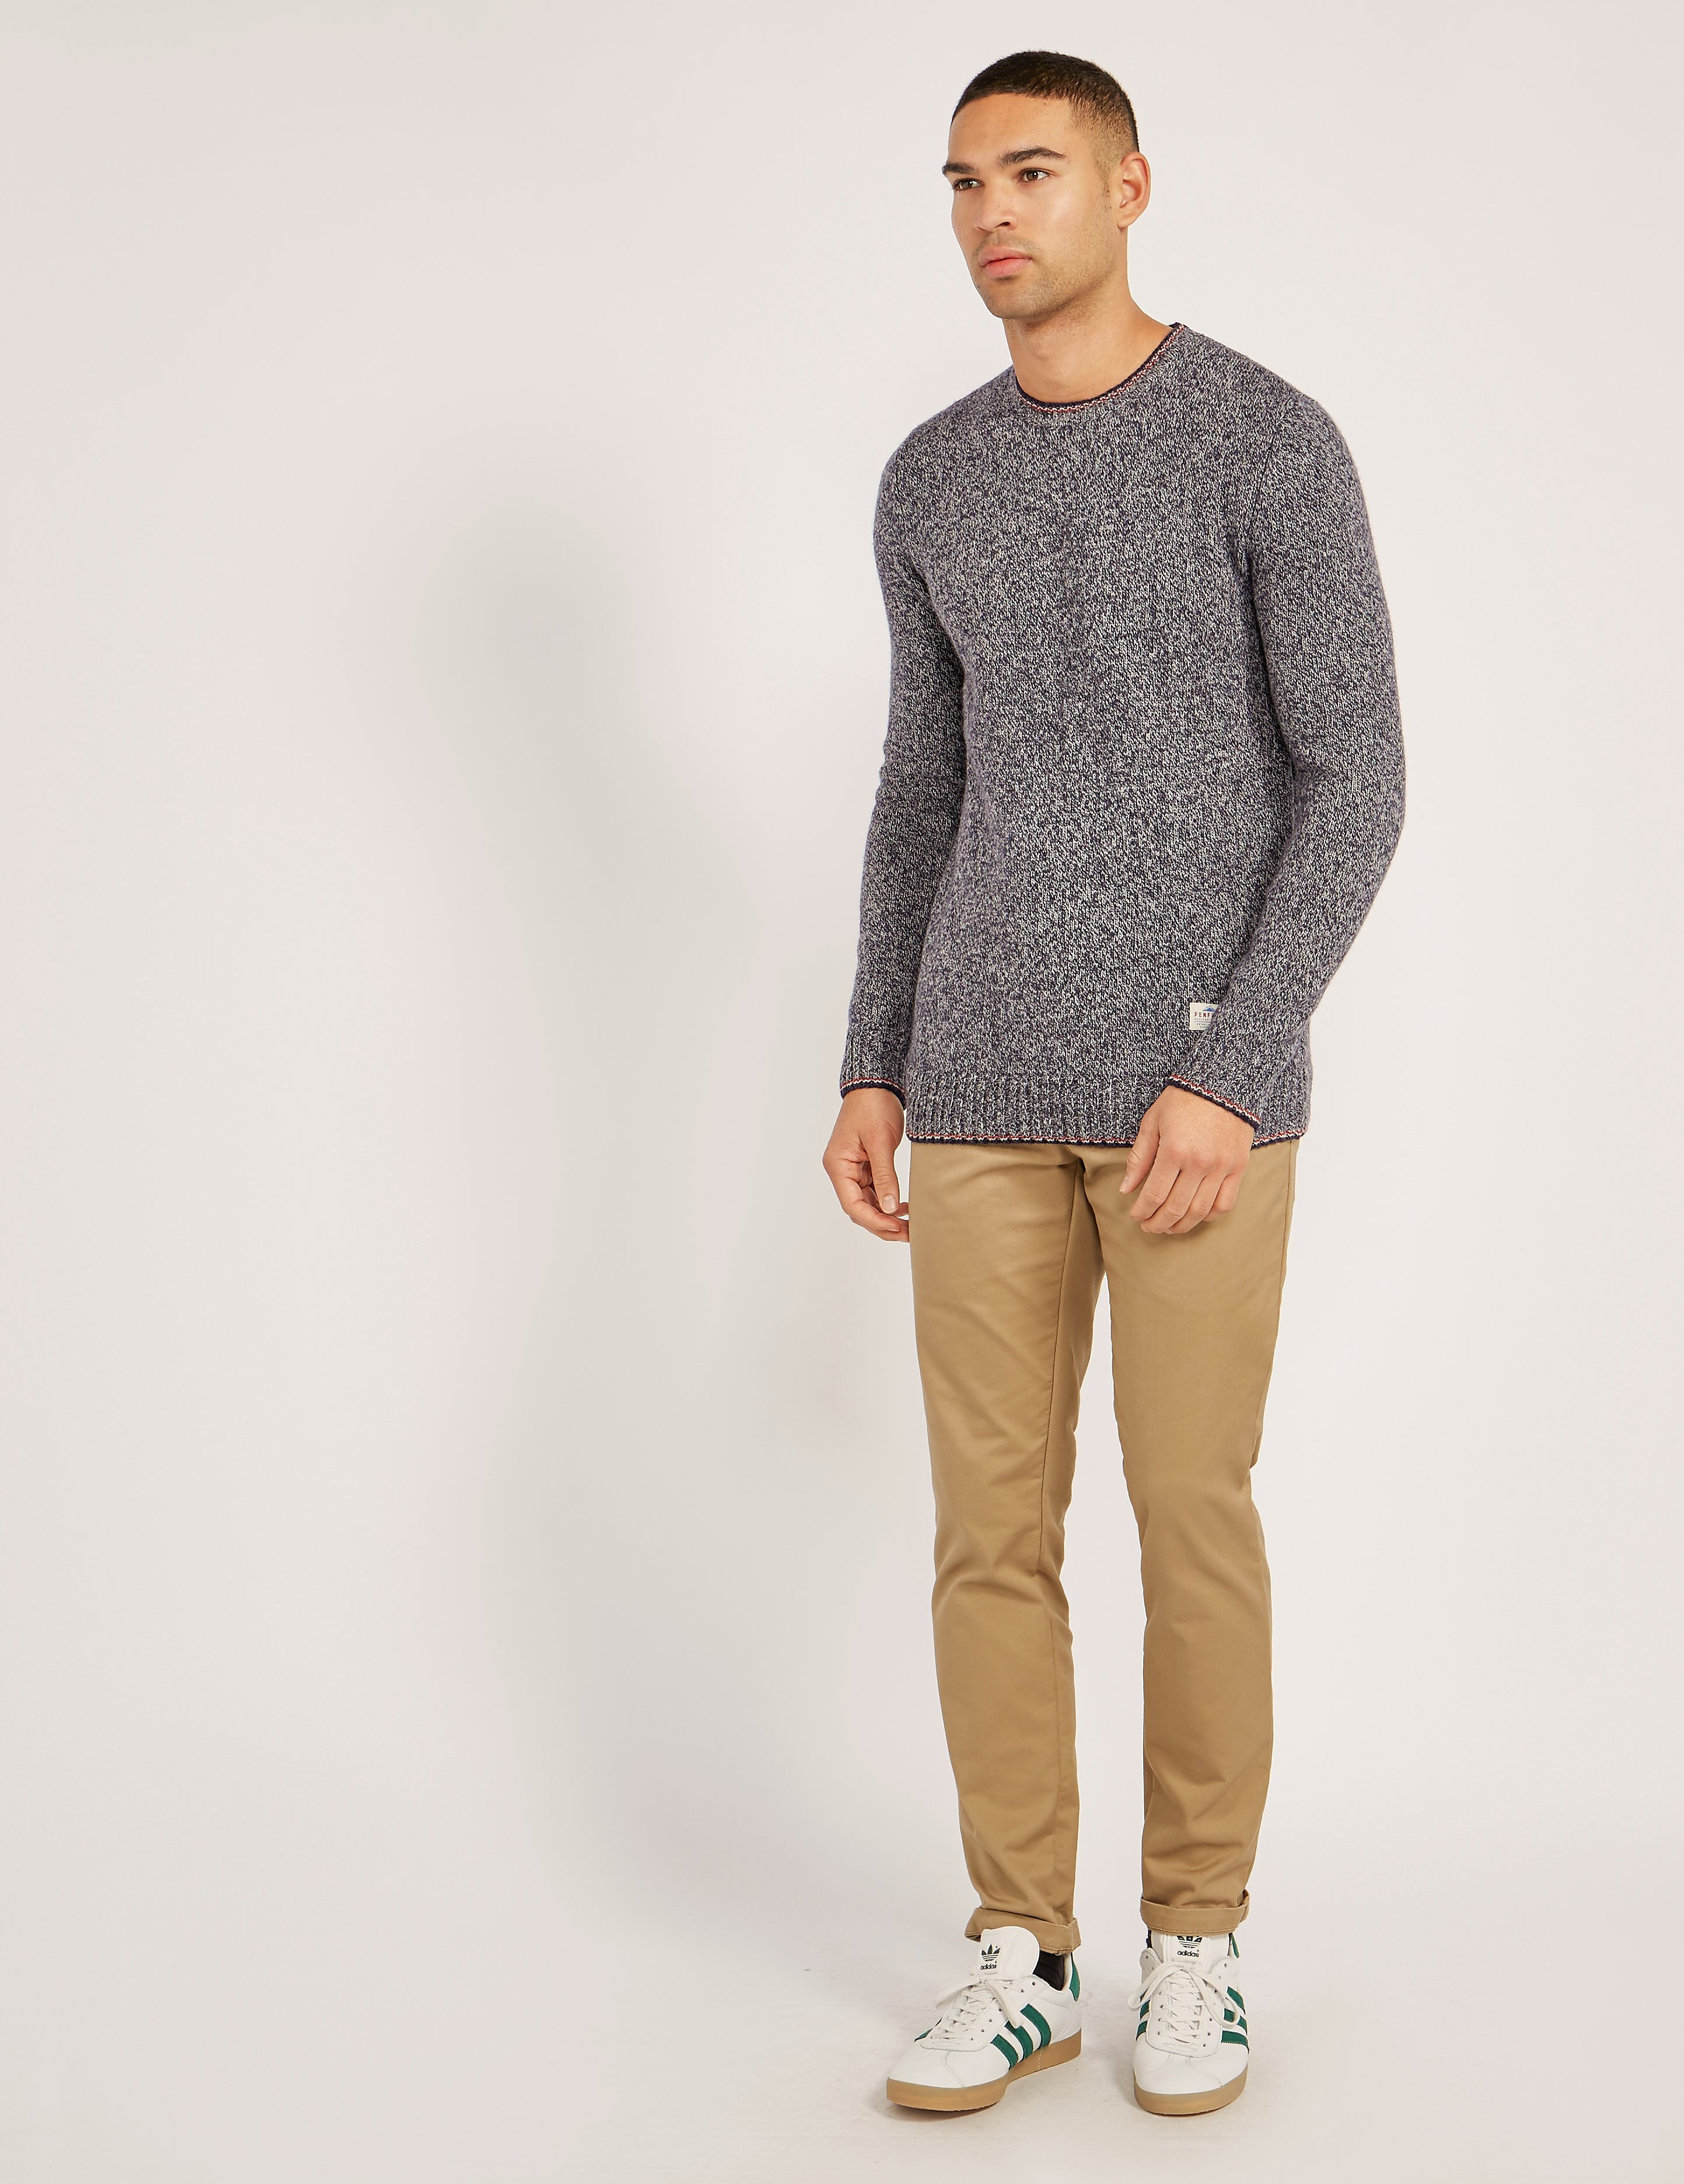 Penfield Gering Crew Knit